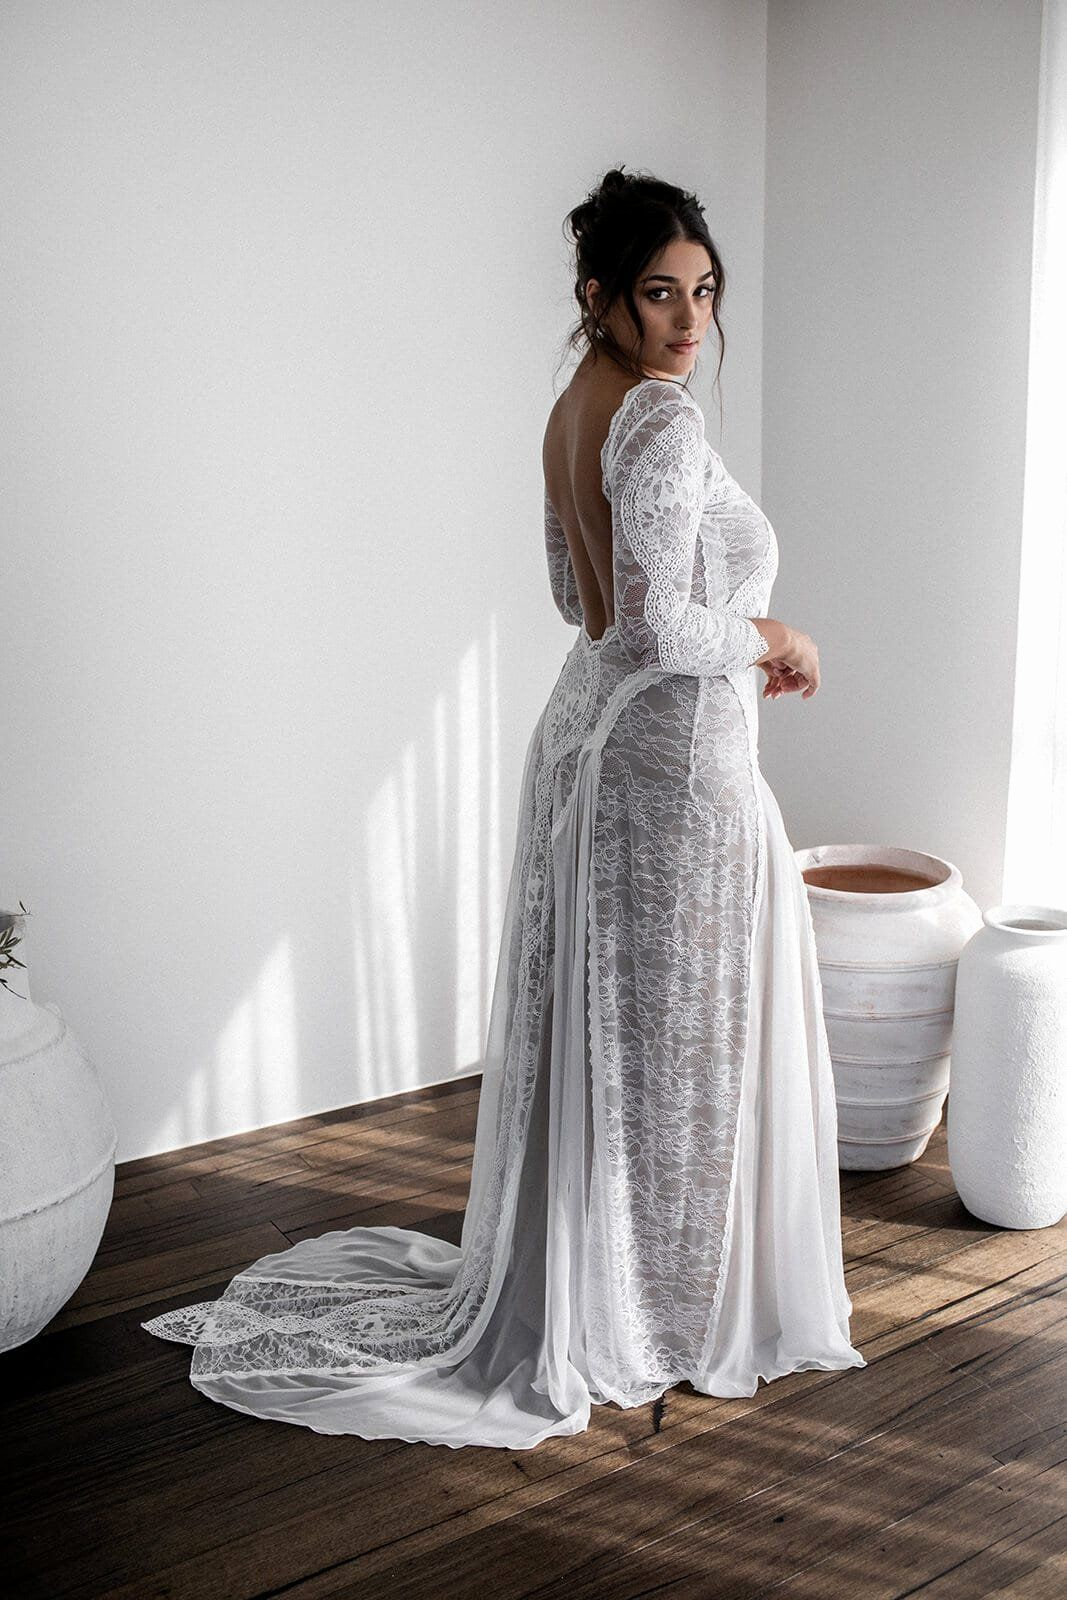 How Much Does It Cost To Dry Clean Wedding Dress Lovely Inca In 2020 Casual Lace Wedding Dress Wedding Dress Cost Clean Wedding Dress